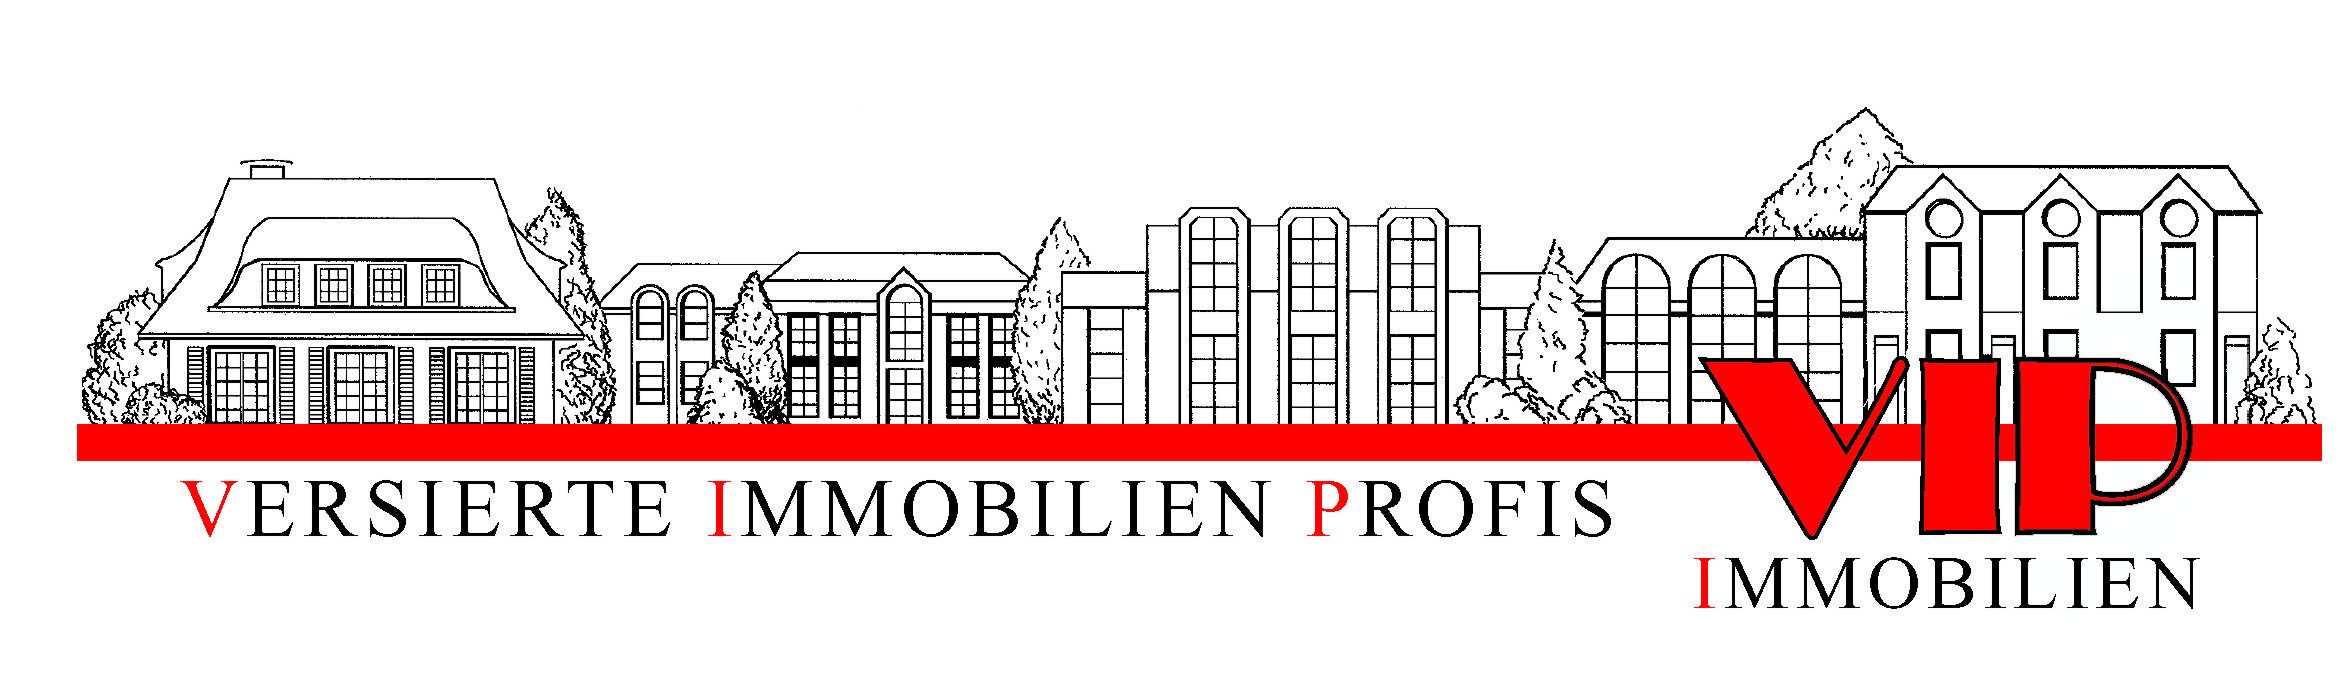 VIP IMMOBILIEN